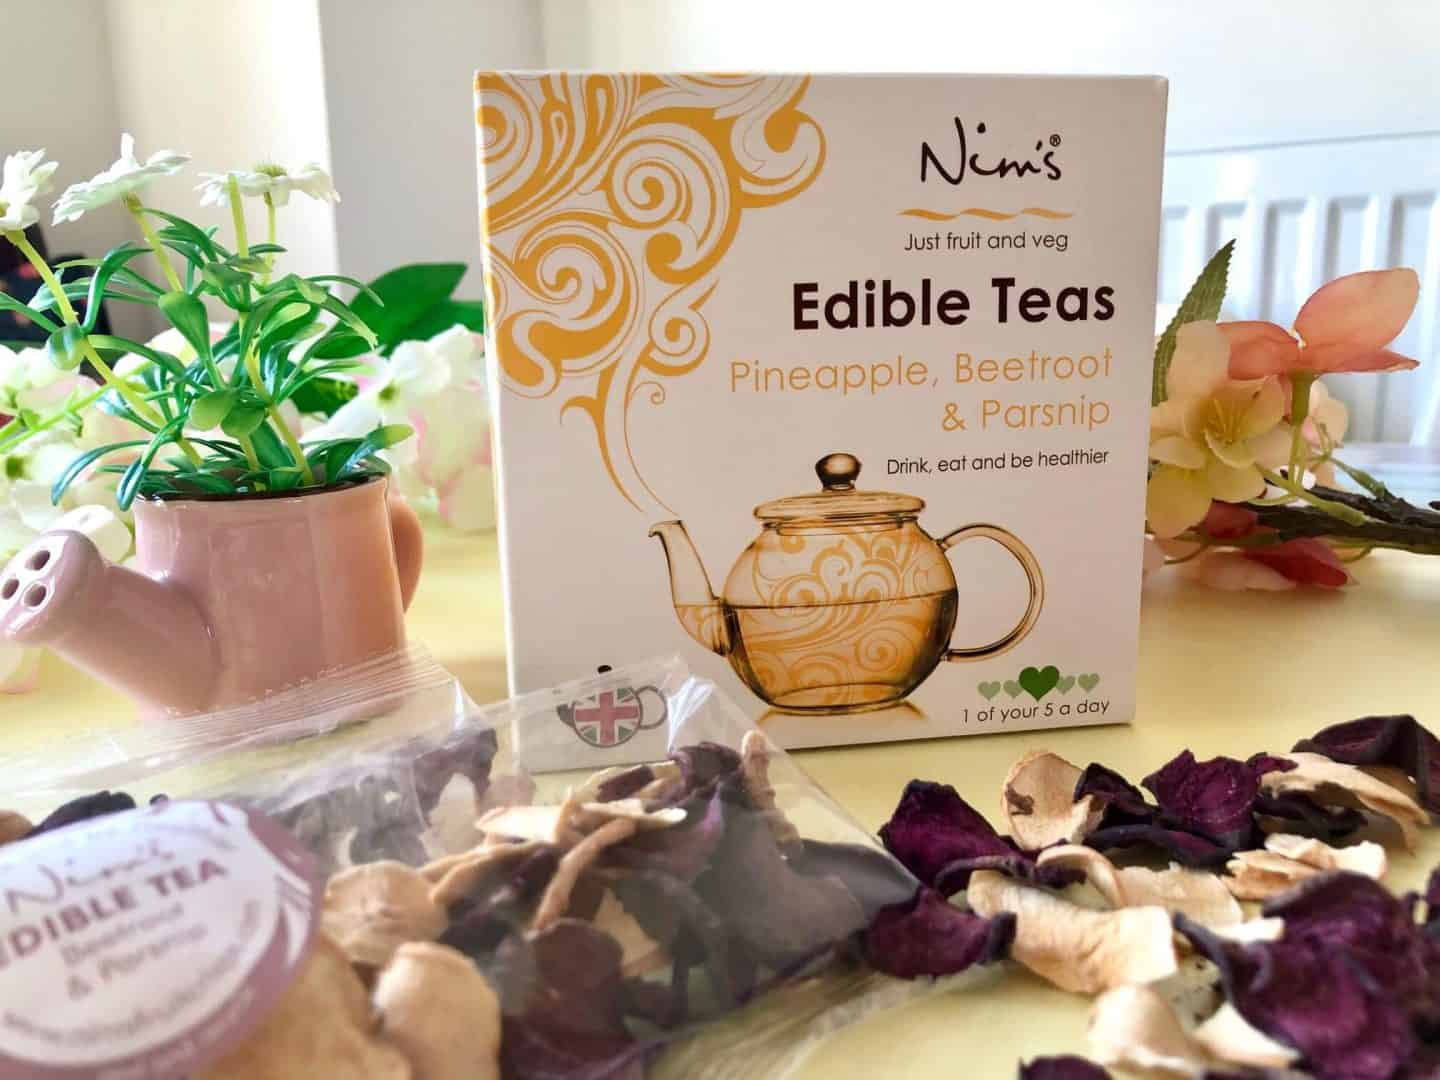 Gift Ideas For Mother's Day - Nims Edible Teas